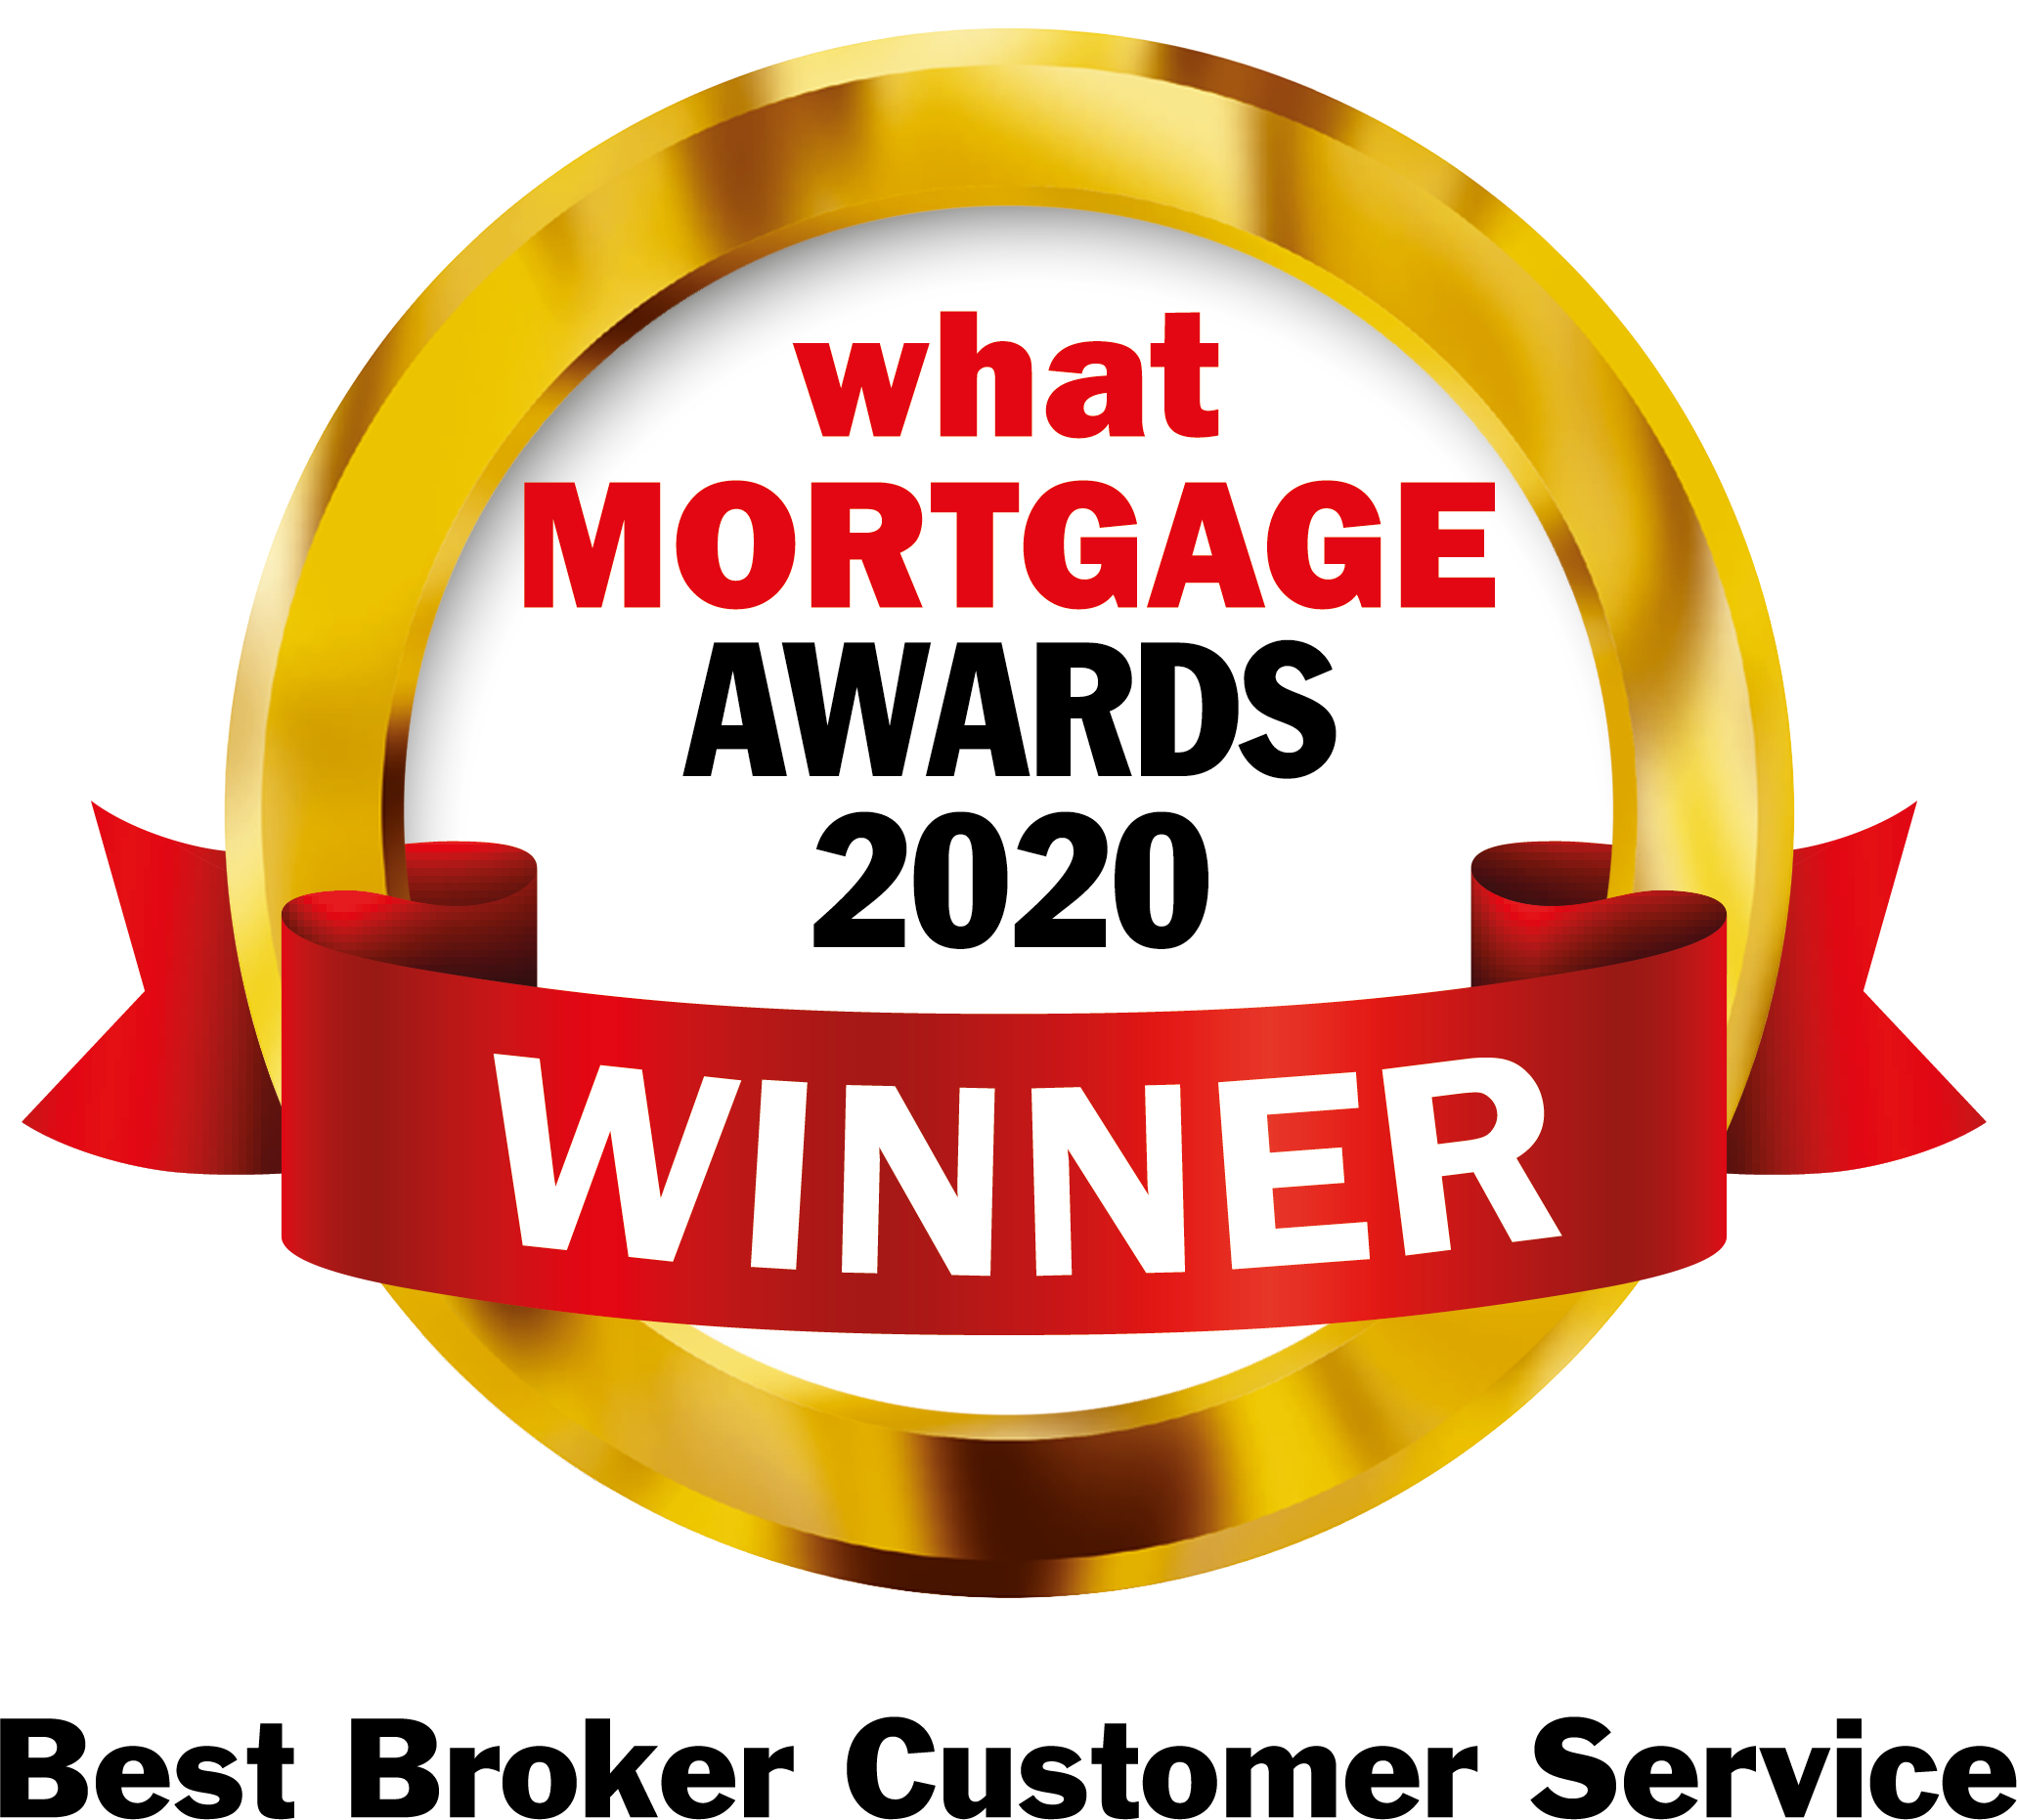 What Mortgage awards 2020